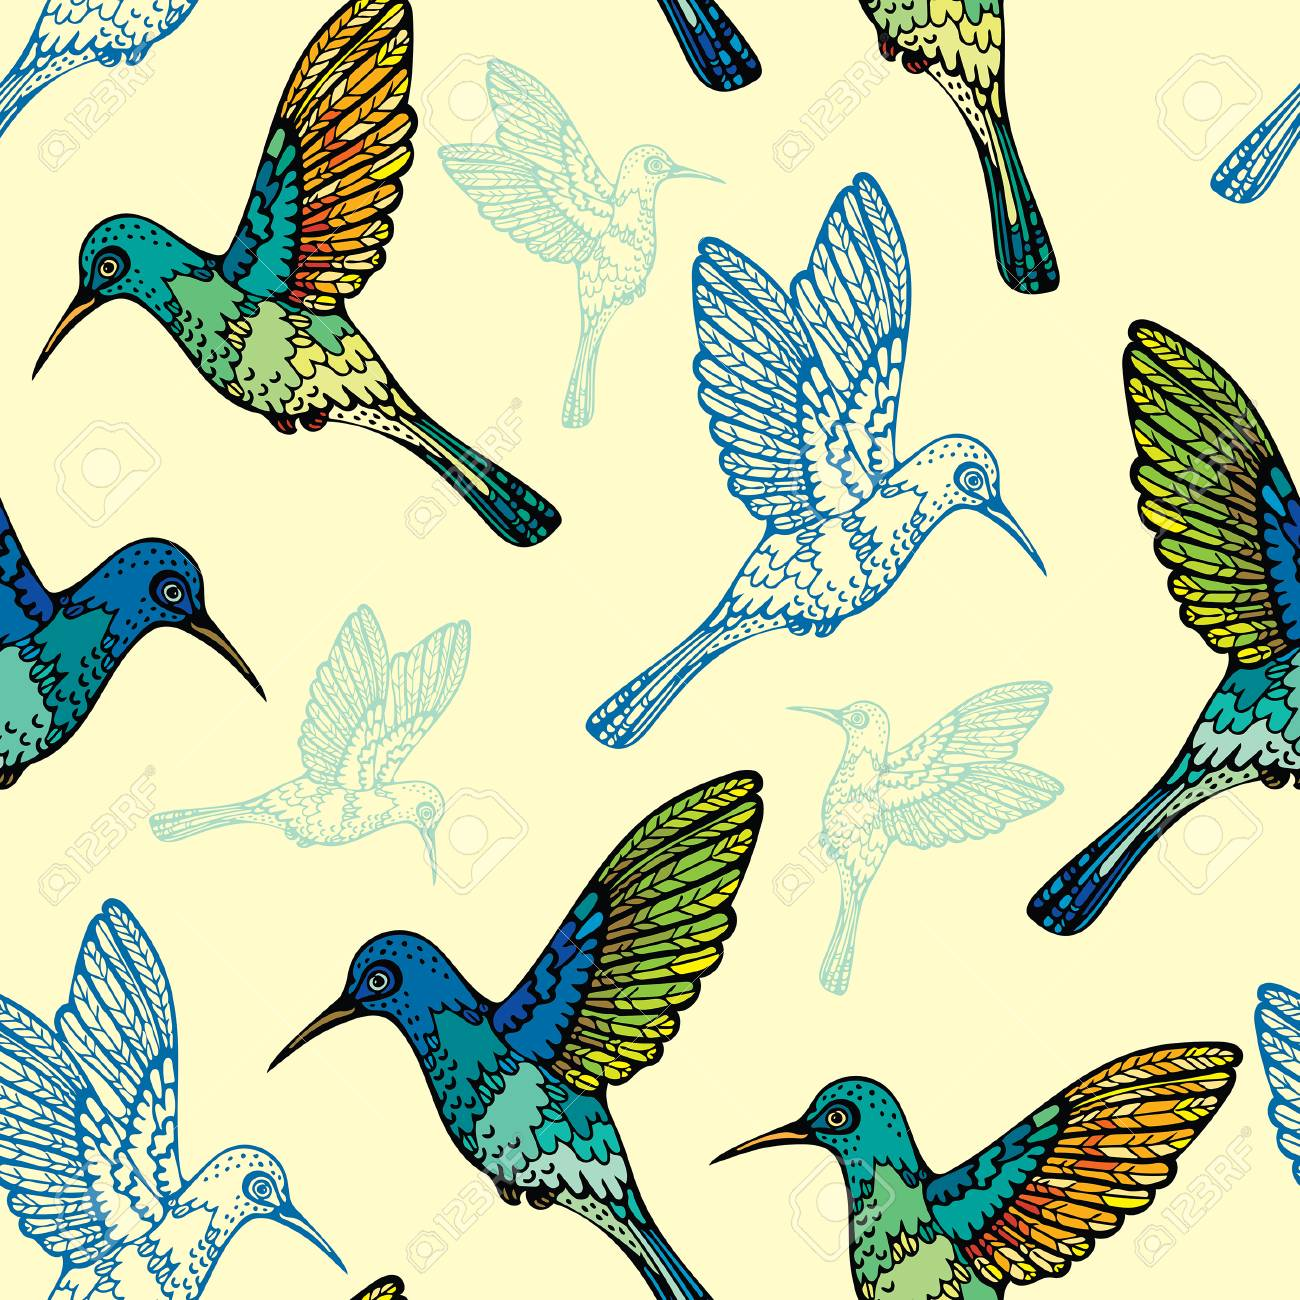 Colorful Seamless Pattern With Graphic Hummingbirds On A Yellow Background Vector Birds Wallpaper Stock